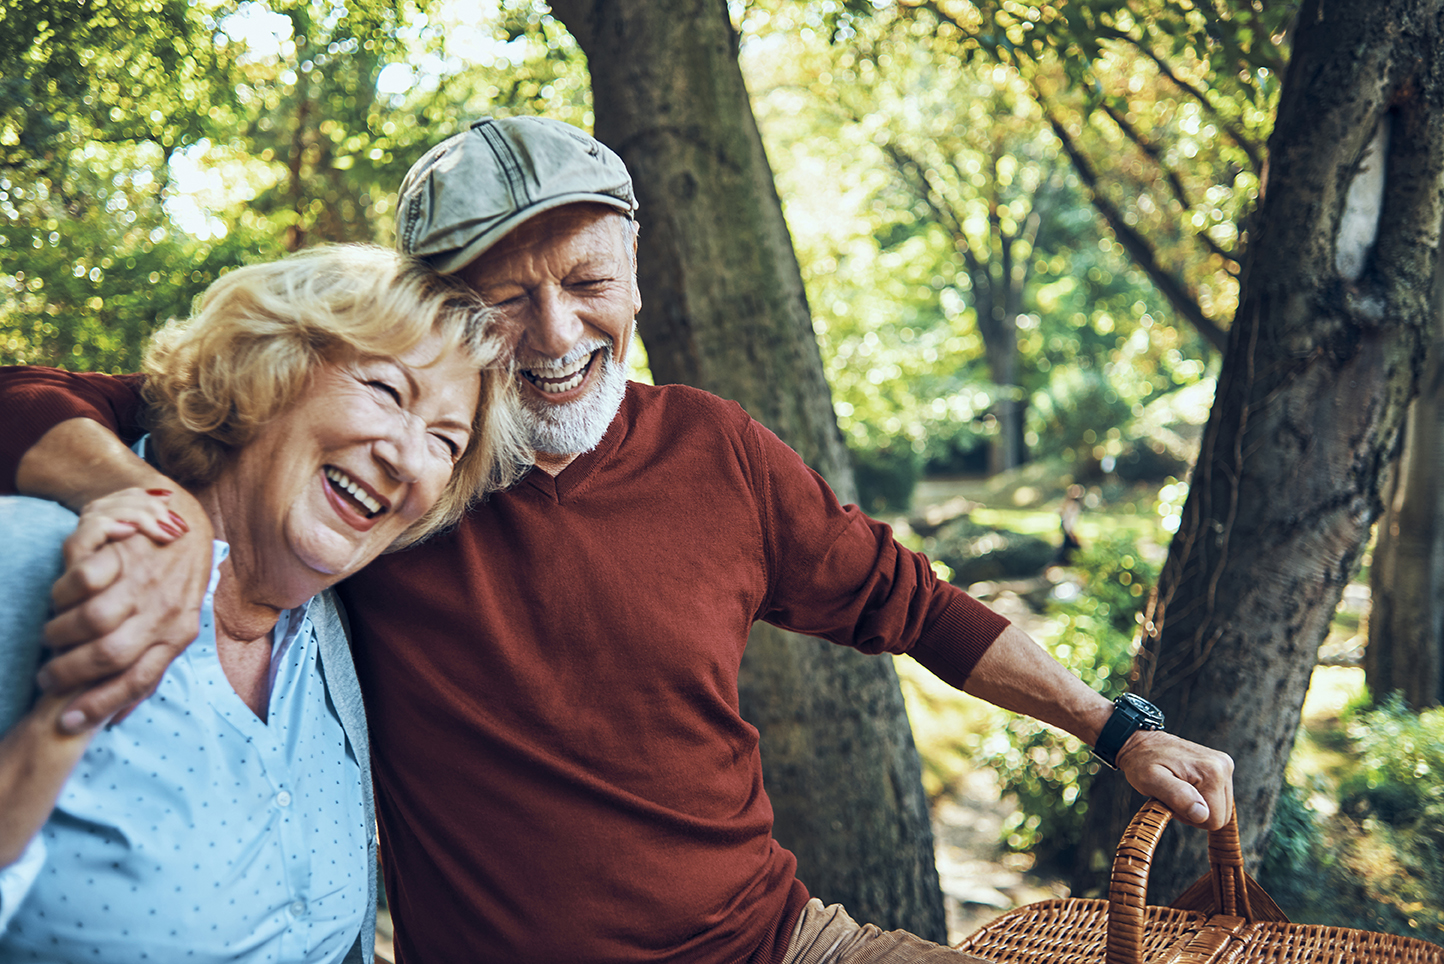 Older man and woman smiling with picnic basket